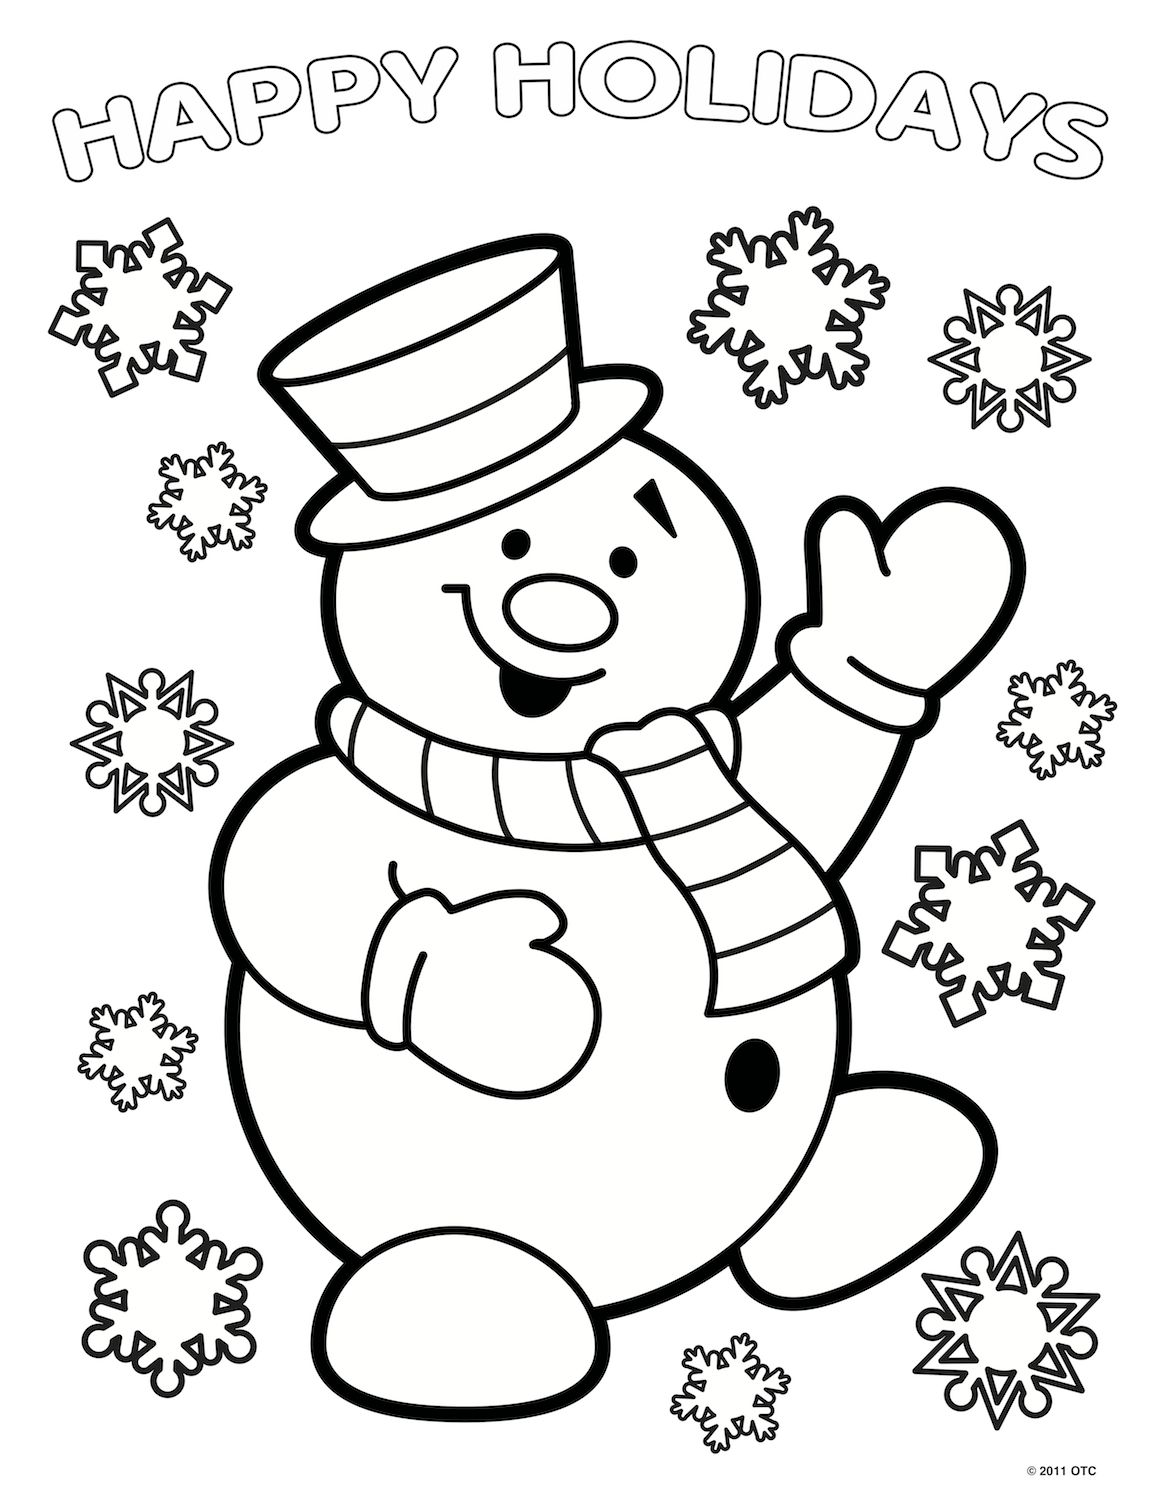 Exclusive Image Of Coloring Pages For 3 Year Olds Entitlementtrap Com Printable Christmas Coloring Pages Snowman Coloring Pages Free Christmas Coloring Pages